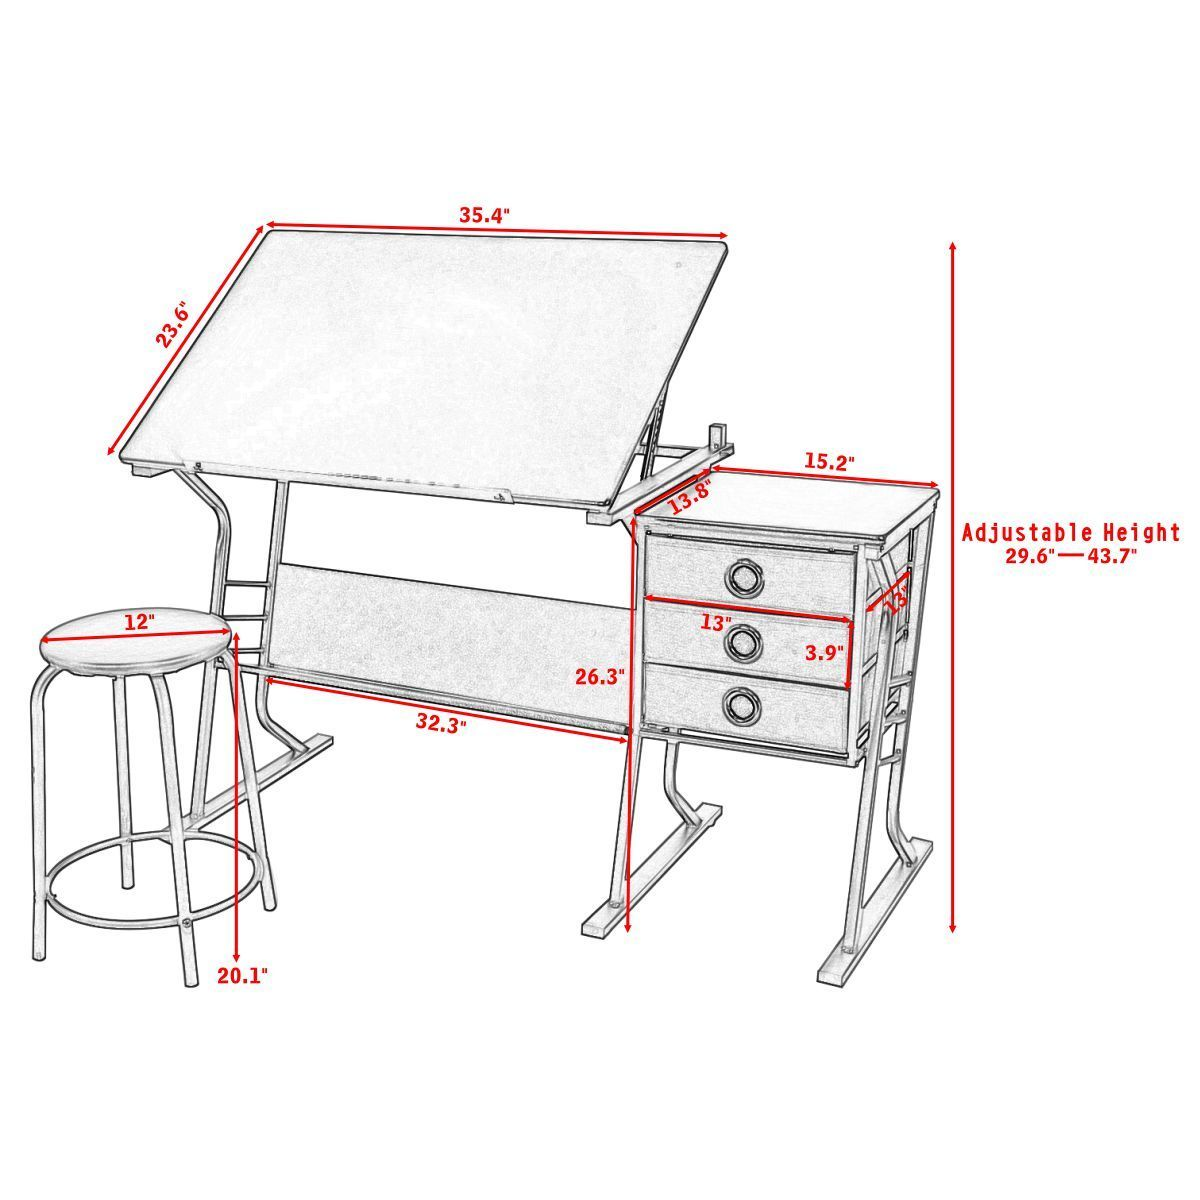 Giantex Drafting Table Modern Adjustable Drawing Desk Art Craft Hobby With  Stool U0026 Drawers Painting Furniture Set HW52825 In Laptop Desks From  Furniture On ...